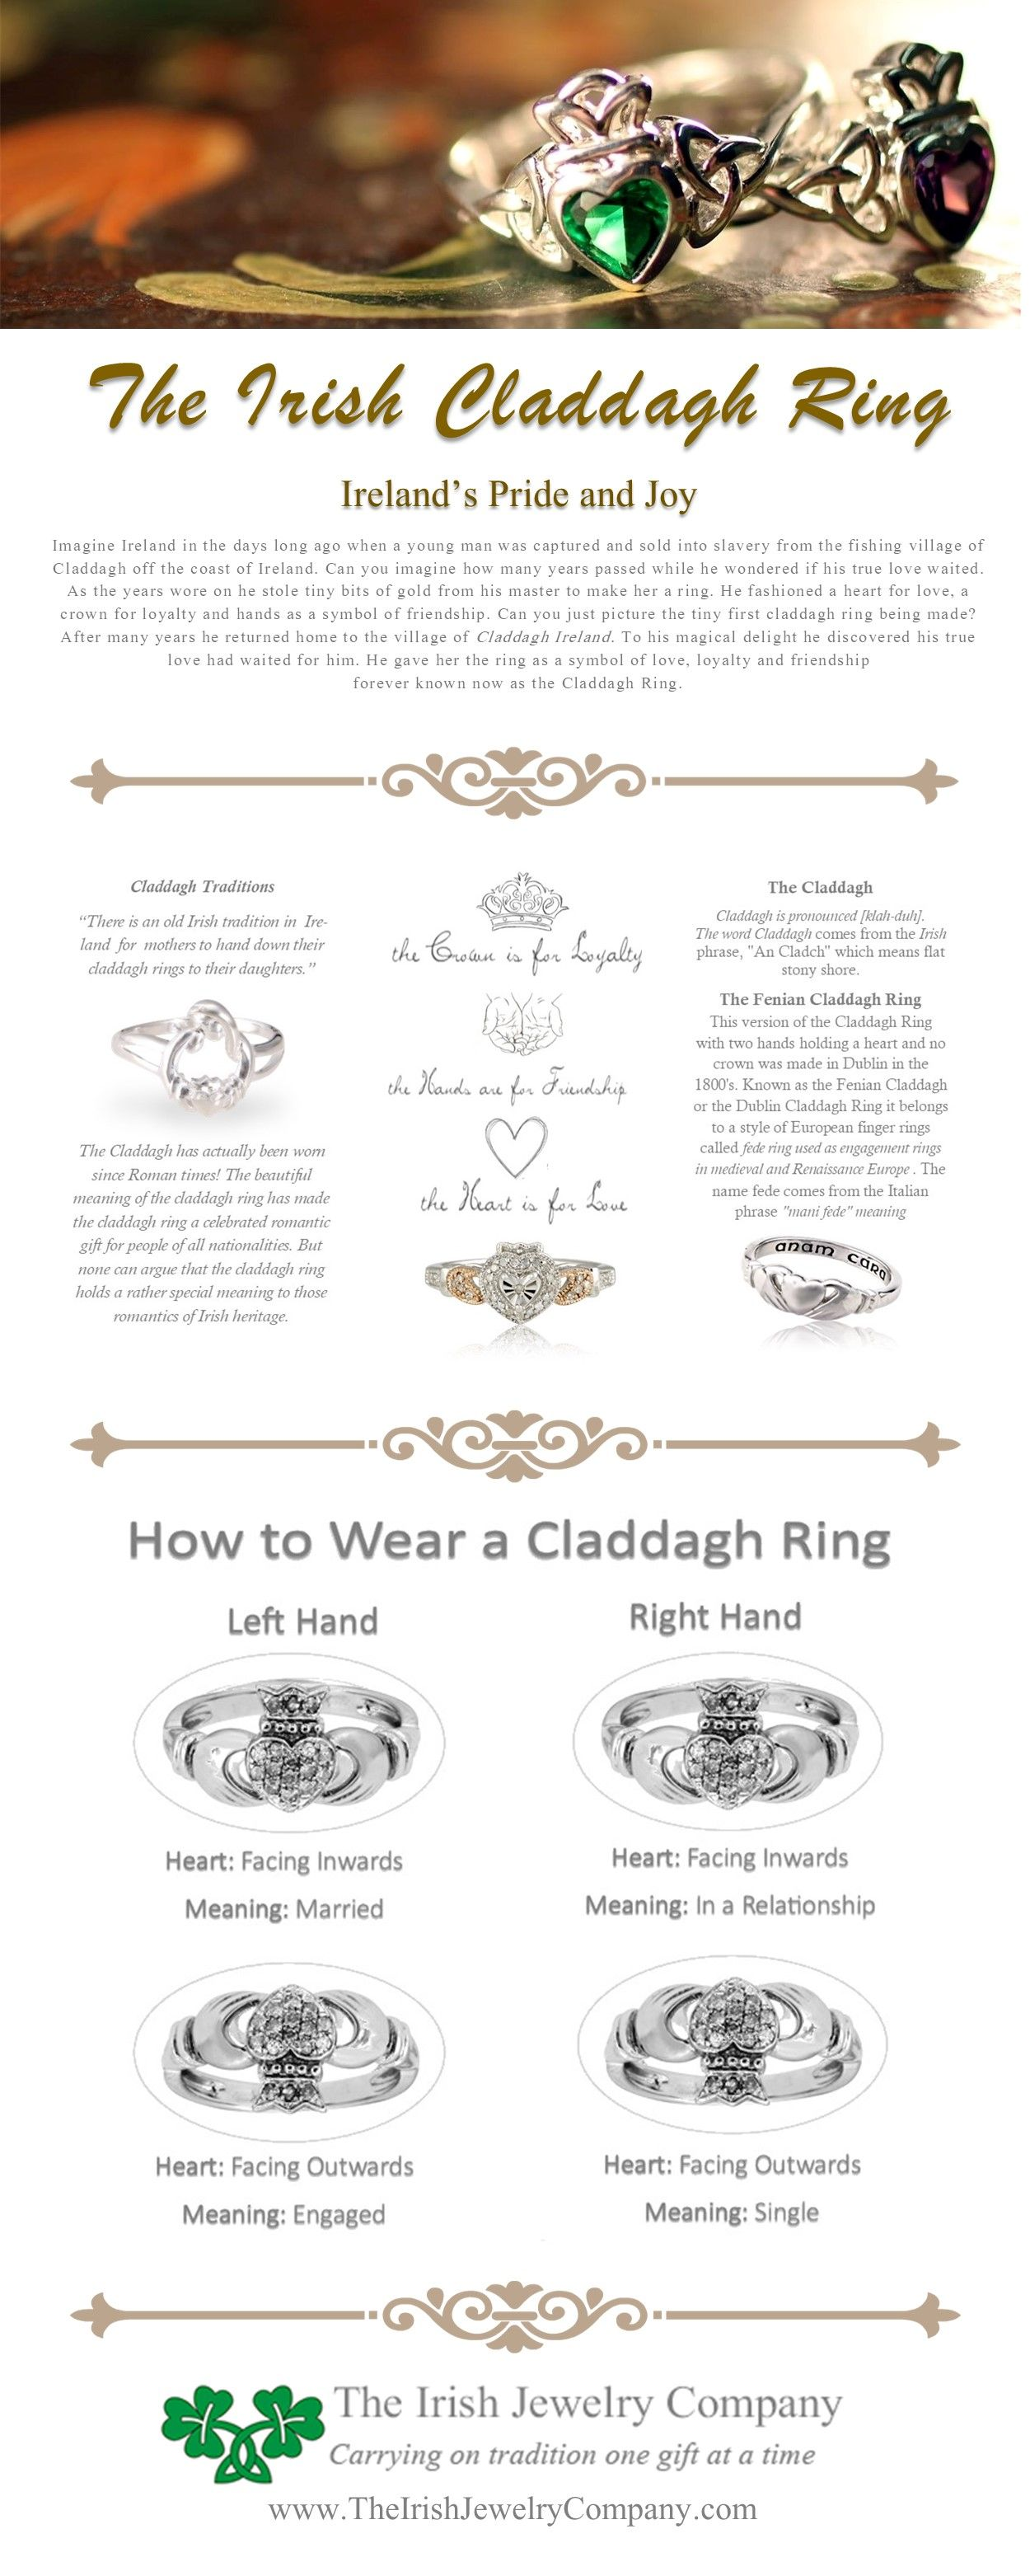 The Irish Claddagh Ring Claddagh Rings Meaning Claddagh Rings Rings With Meaning